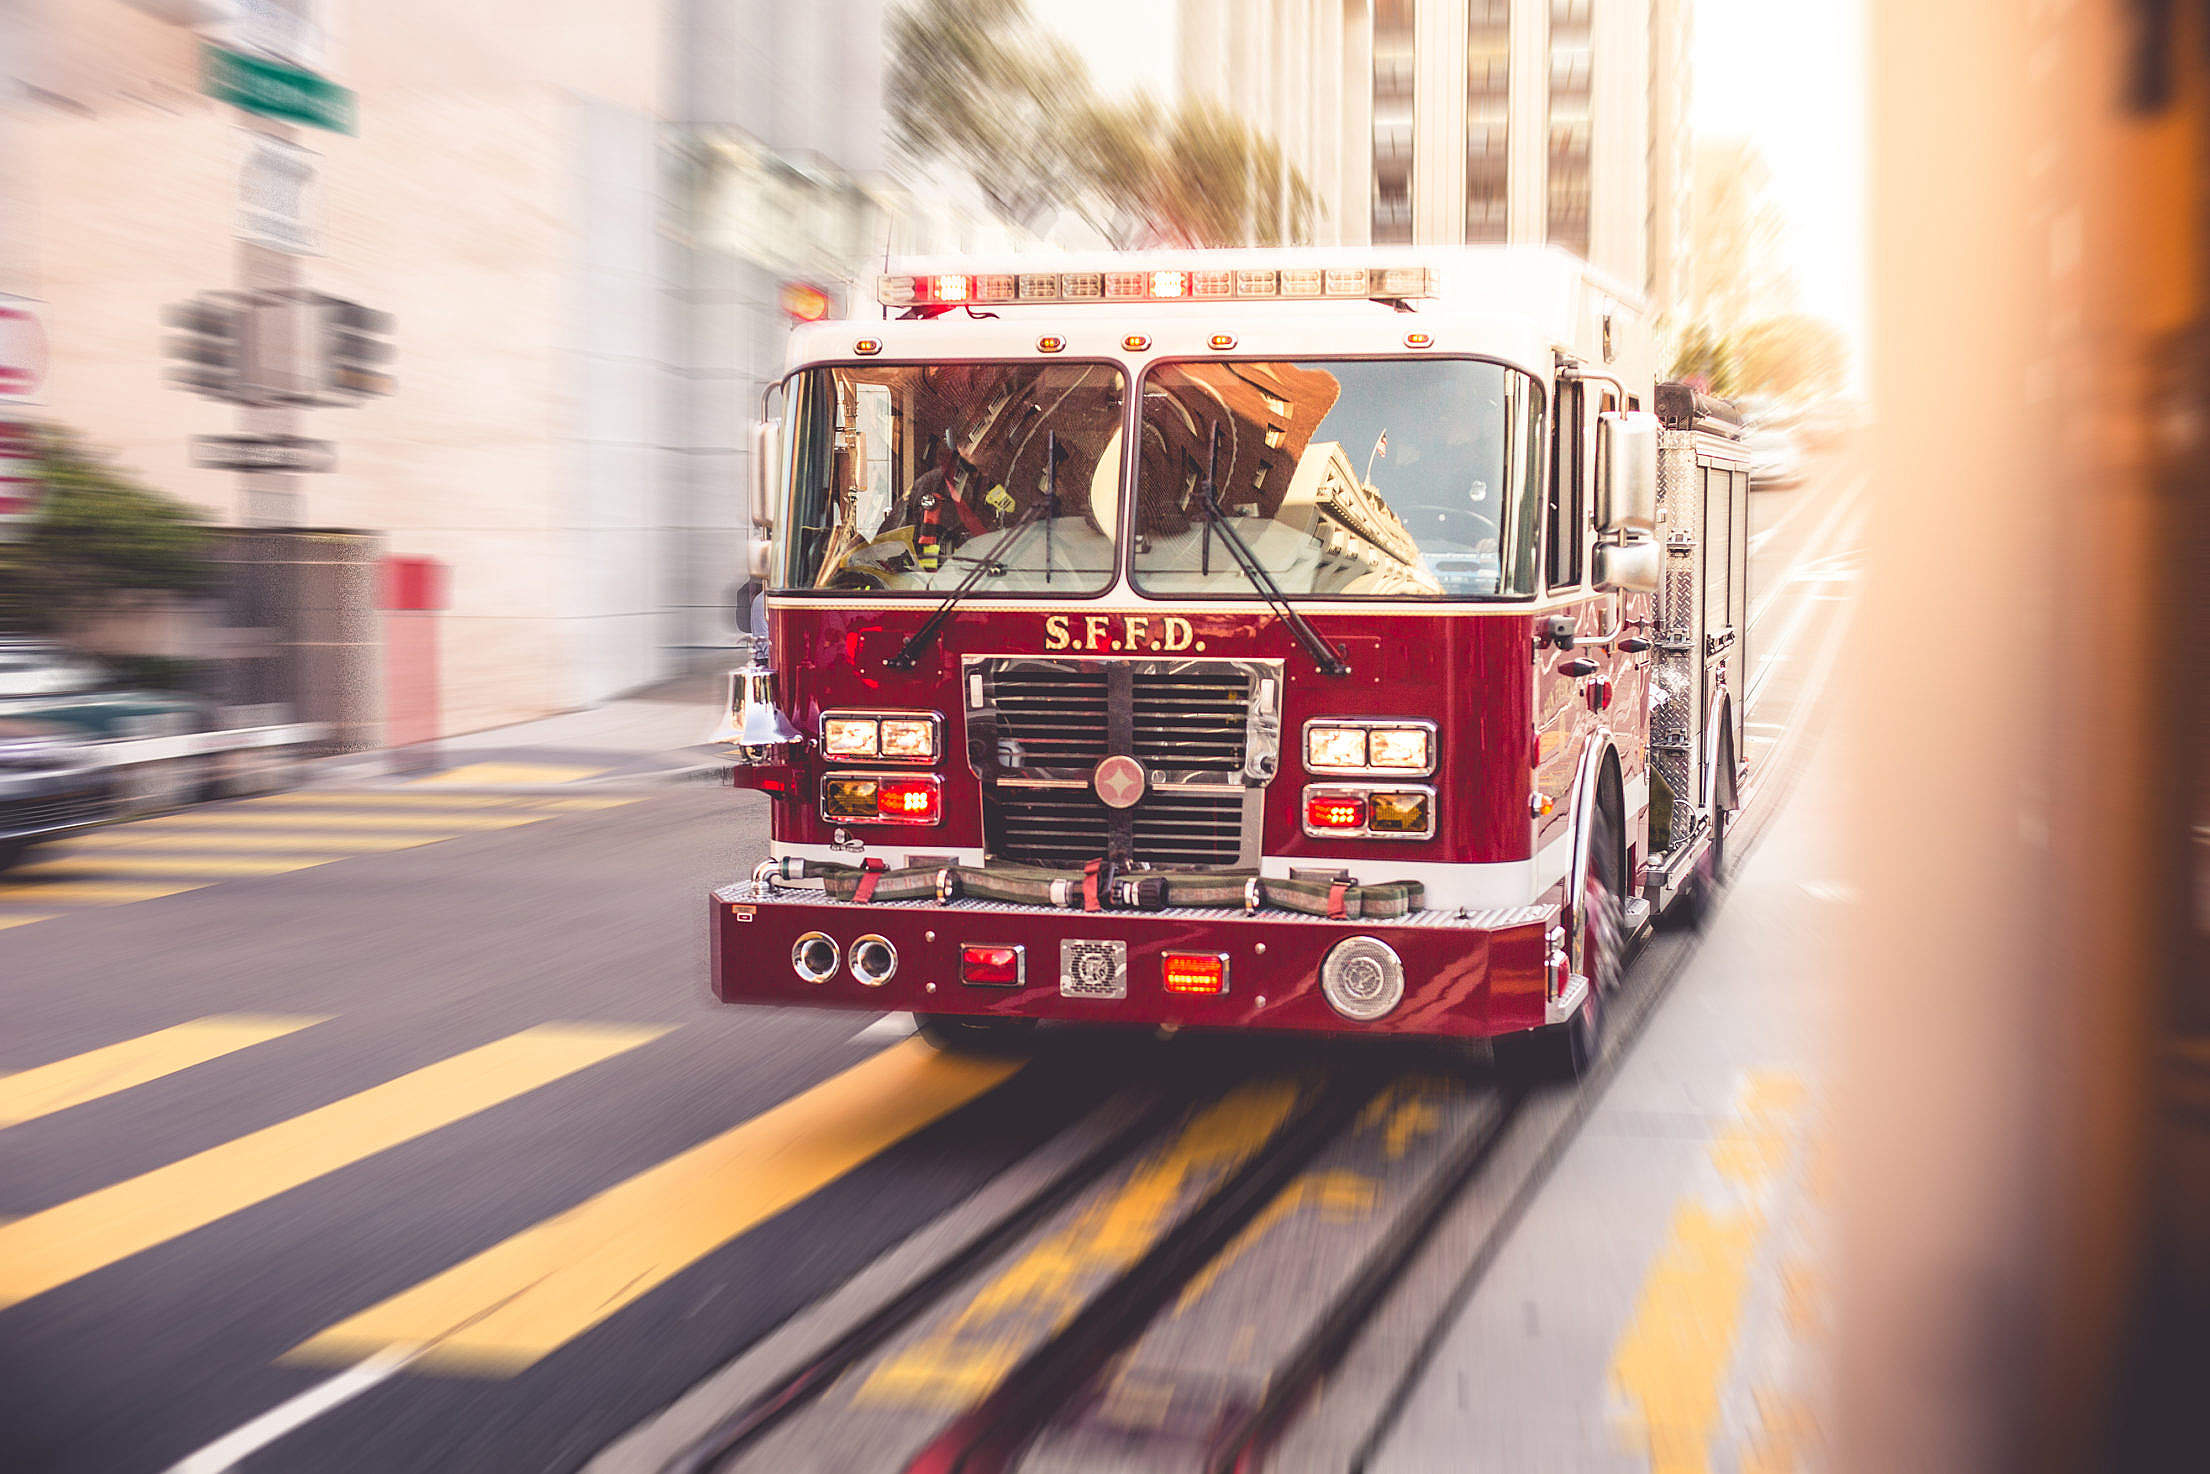 Fire Truck Racing Through The City Traffic Free Stock Photo